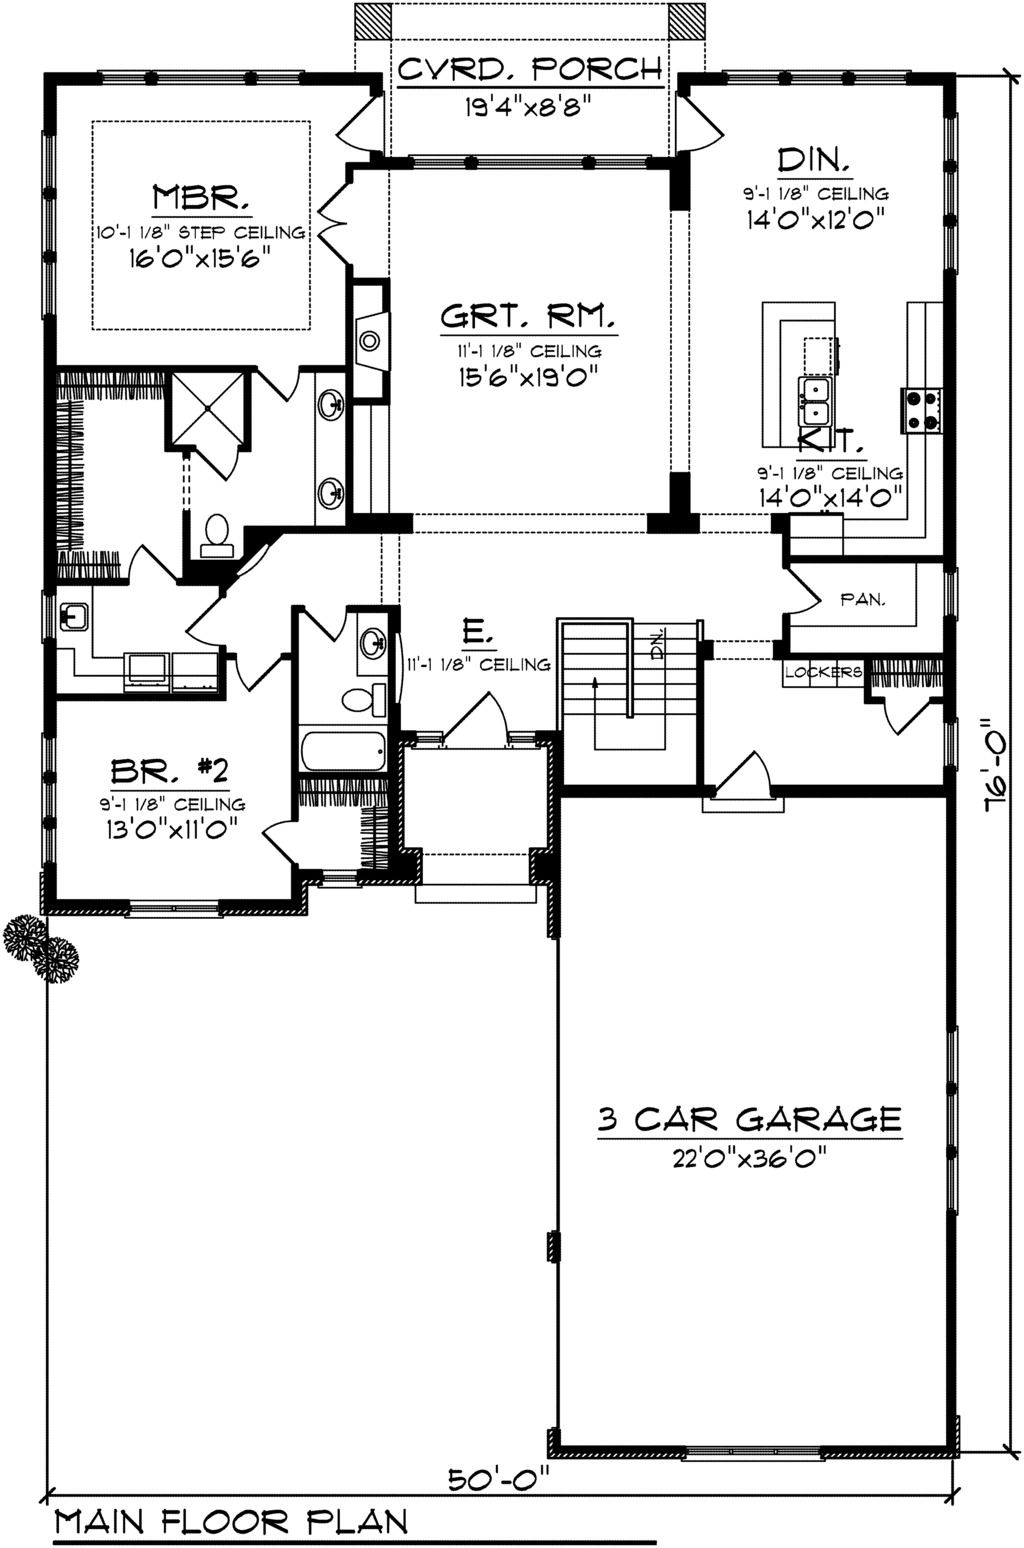 Ranch Style House Plan 2 Beds 1 5 Baths 1993 Sq Ft Plan 70 1096 Bedroom House Plans Retirement House Plans House Floor Plans